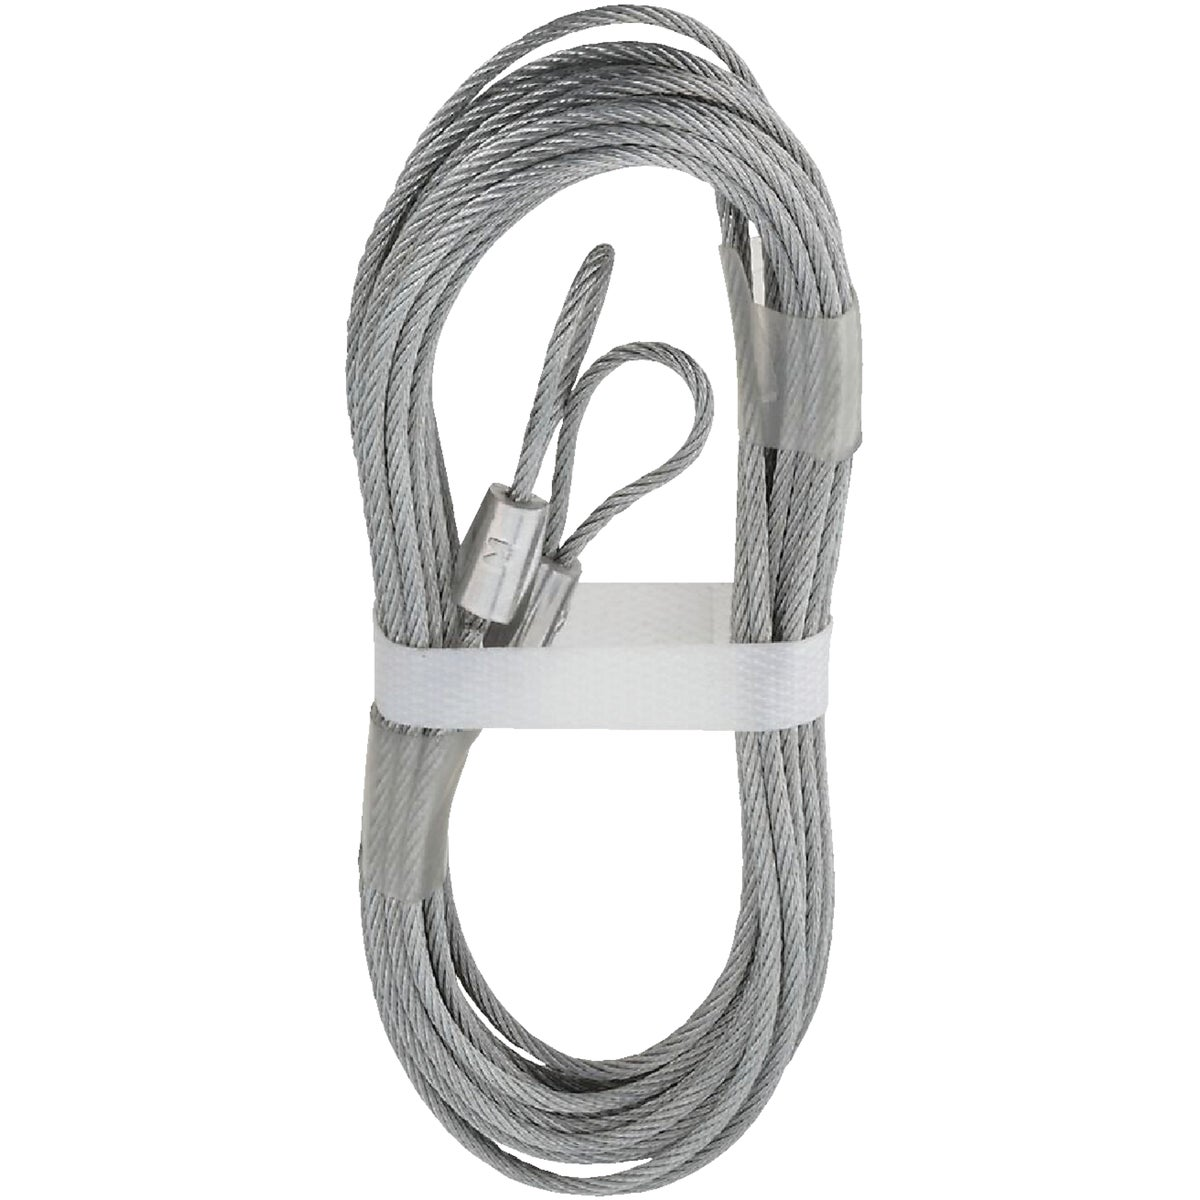 12' Extention Cable